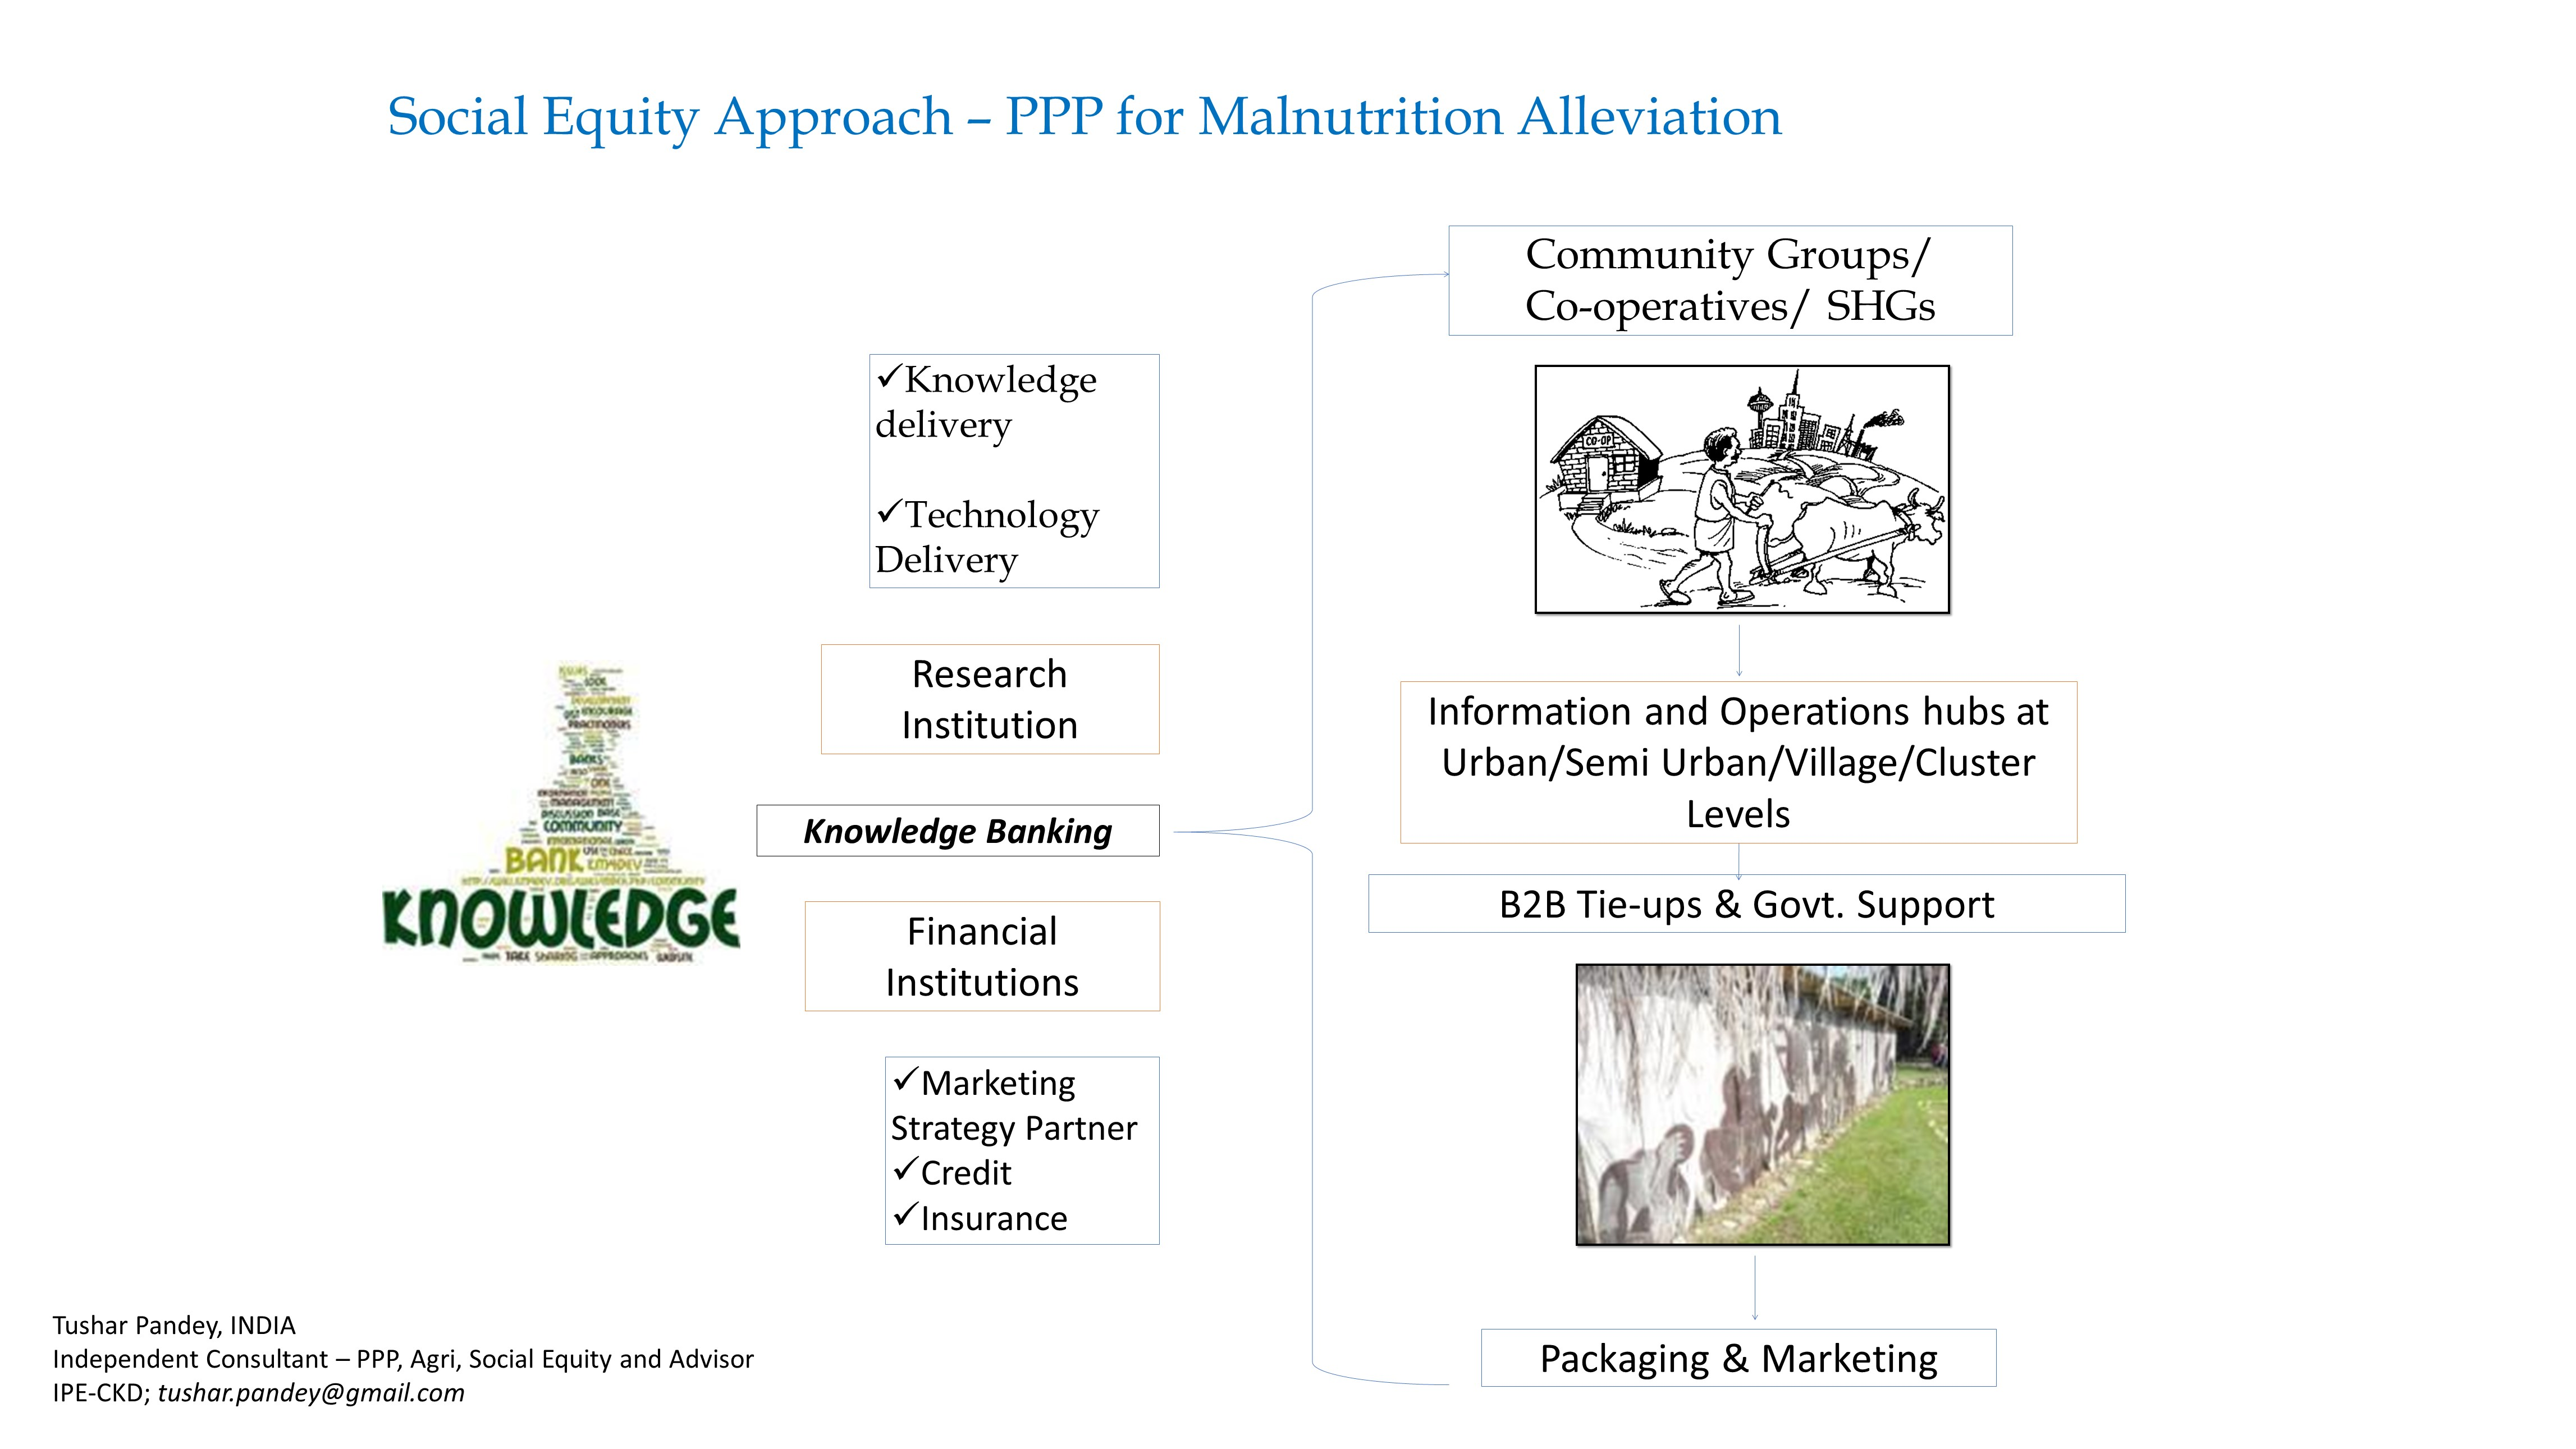 Social Equity Approach – PPP for Malnutrition Alleviation